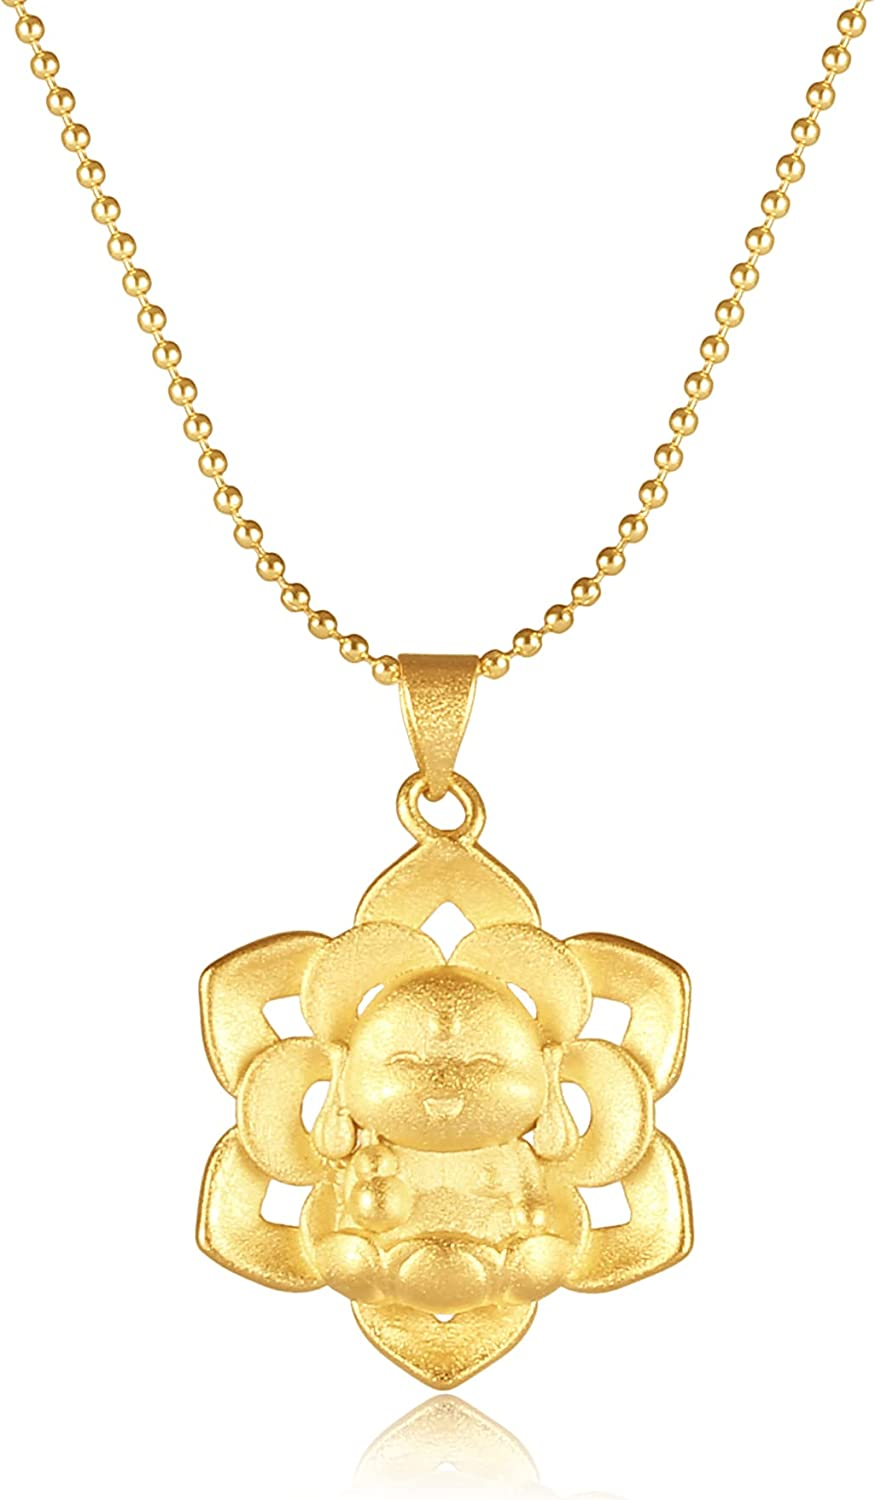 Buddha Necklace Womens Chain Long Stainless Steel Simple Dainty Gold Necklaces for Women